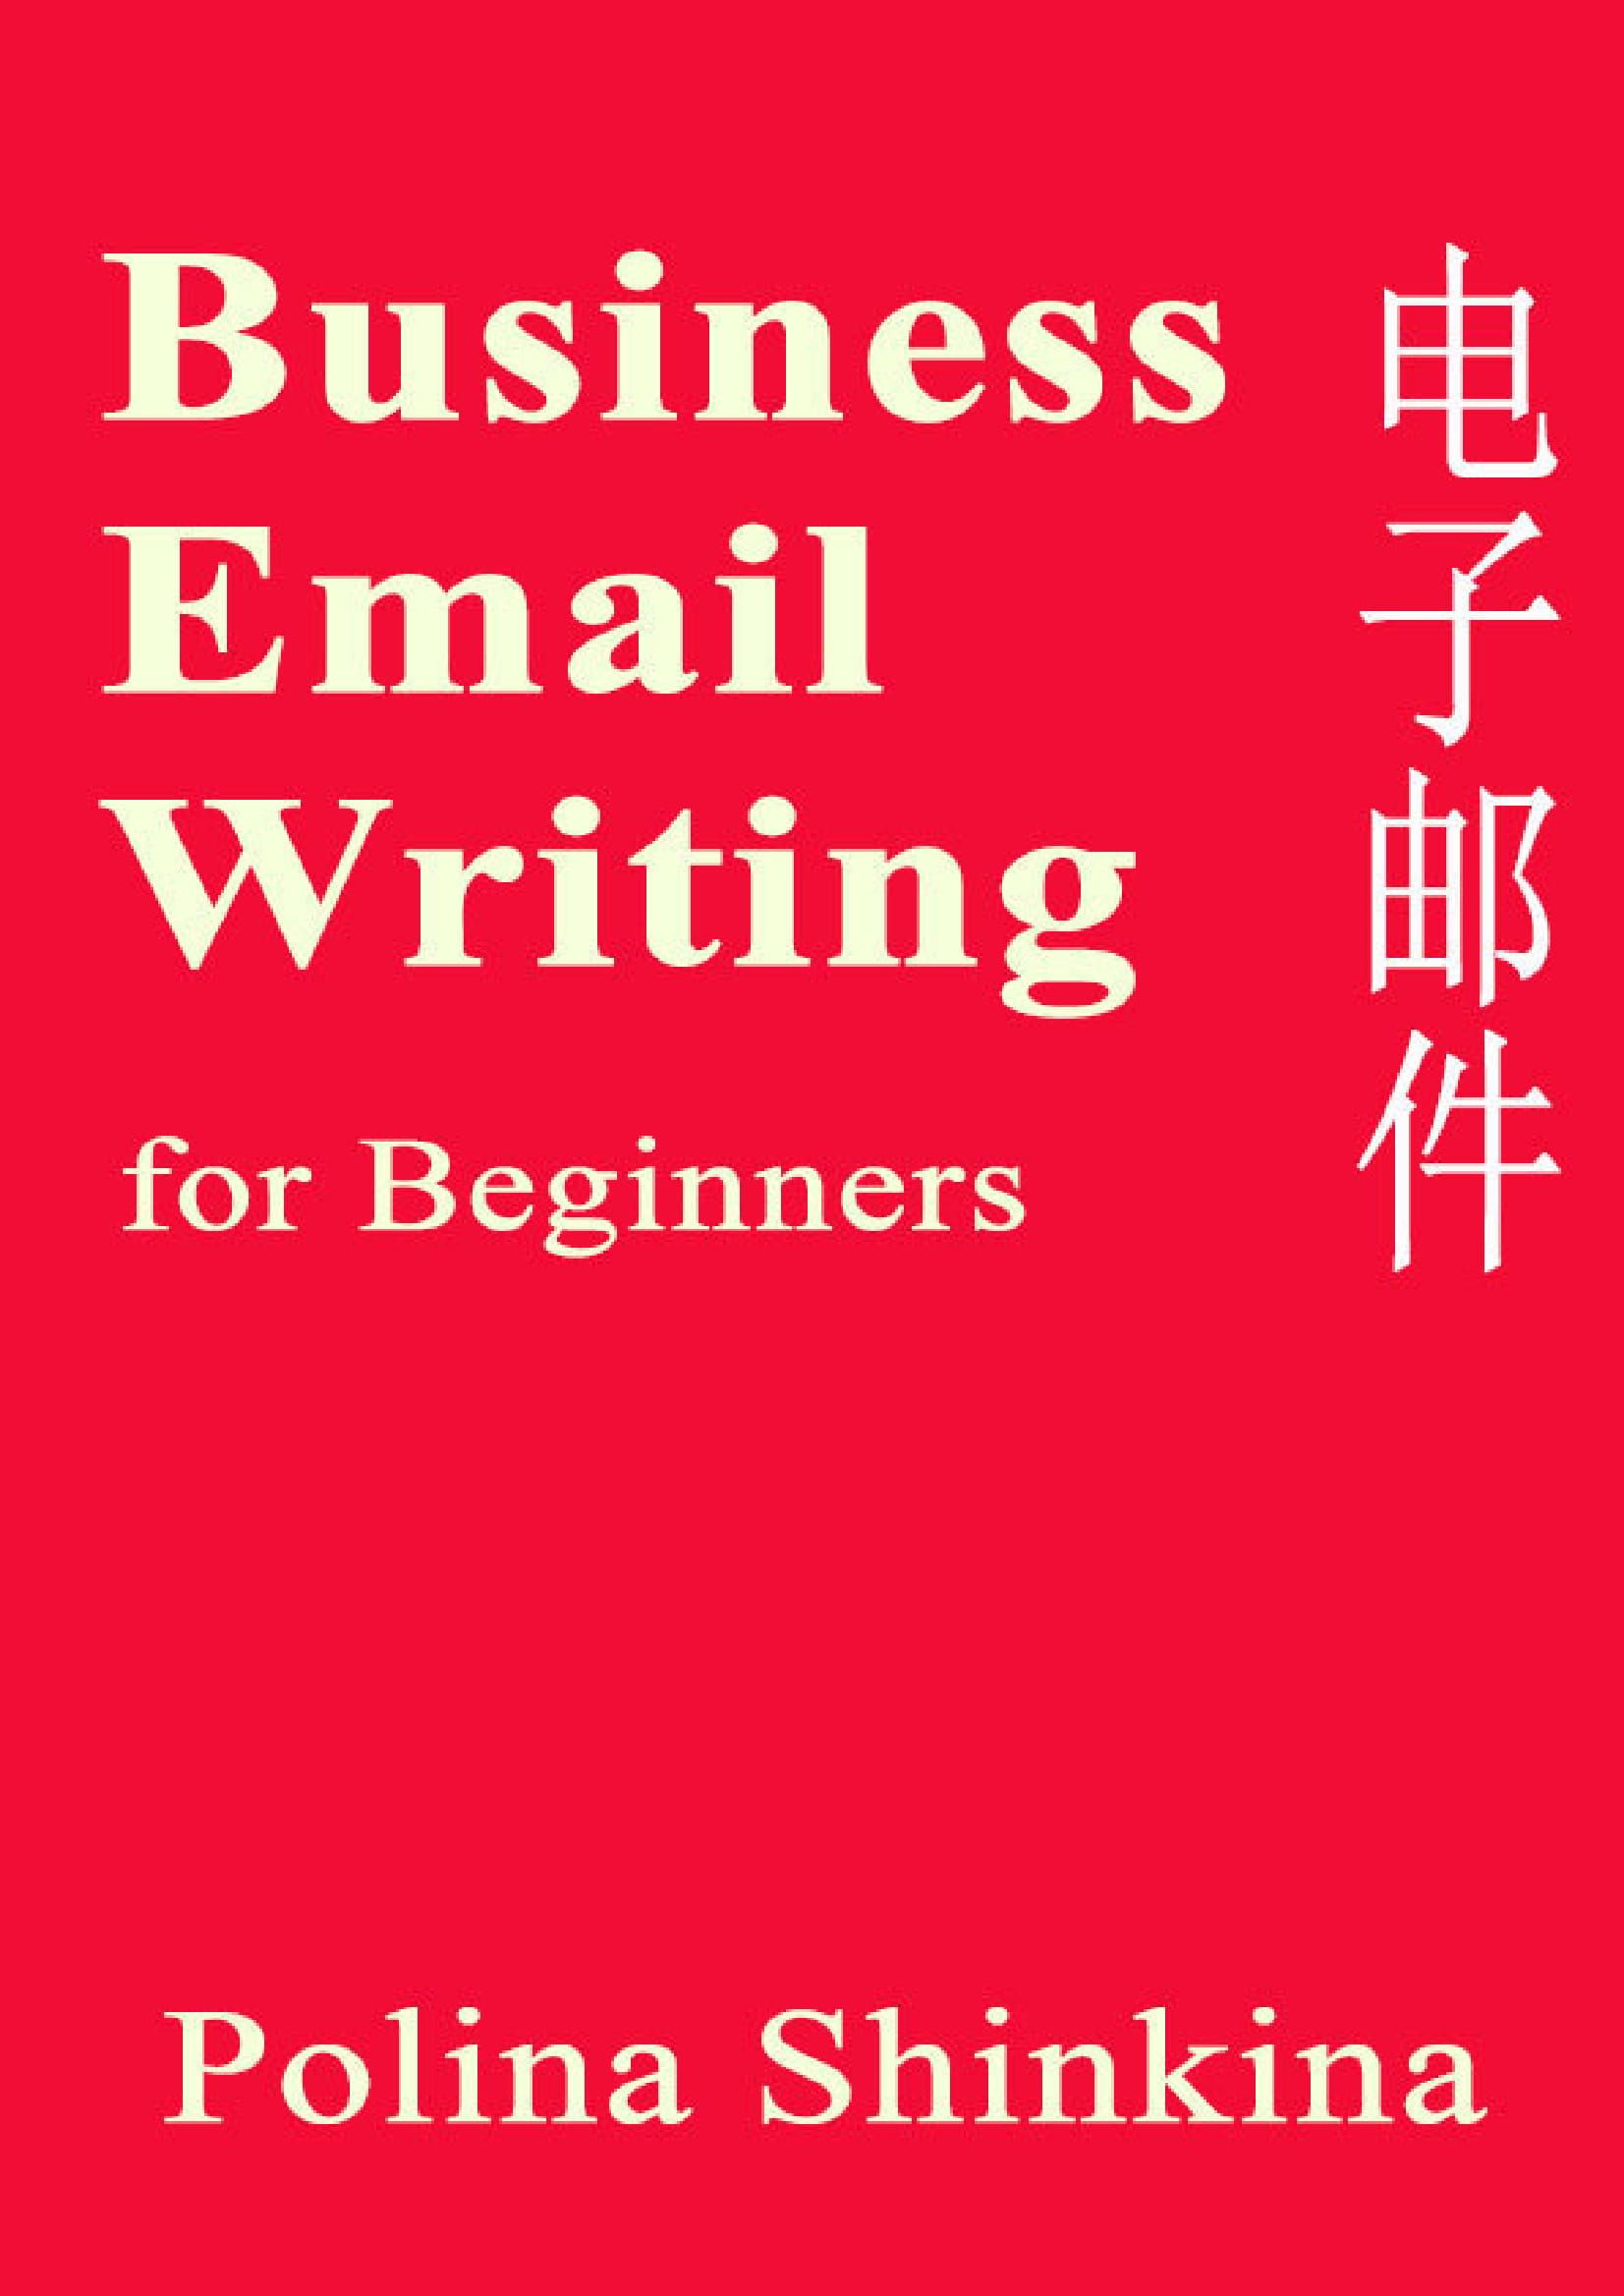 beginner, bill, business, characters, Chinese, commerce